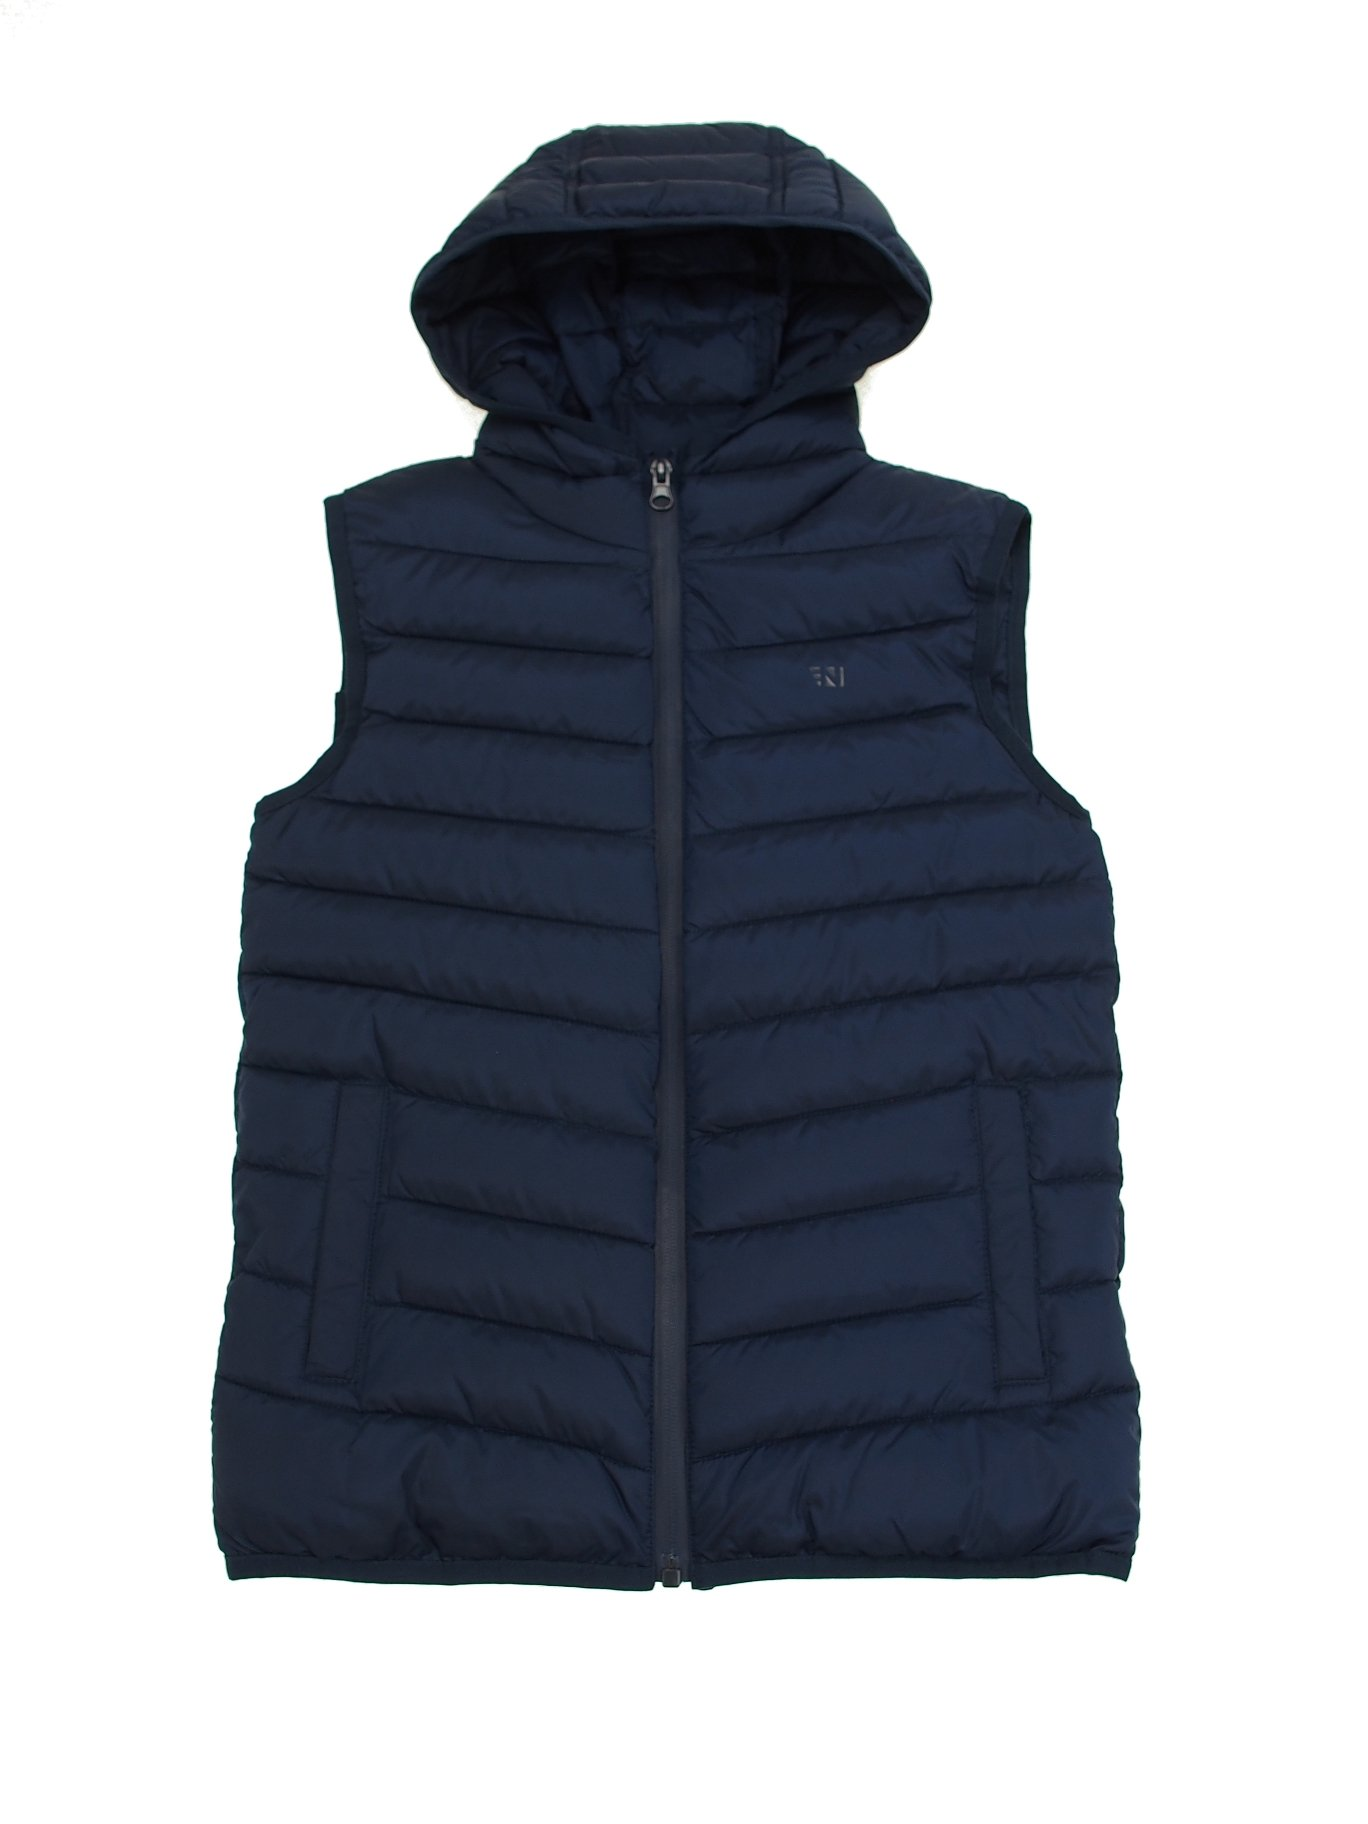 Mayoral 28-06440-077 - Padded Vest for Boys 16 Years Navy